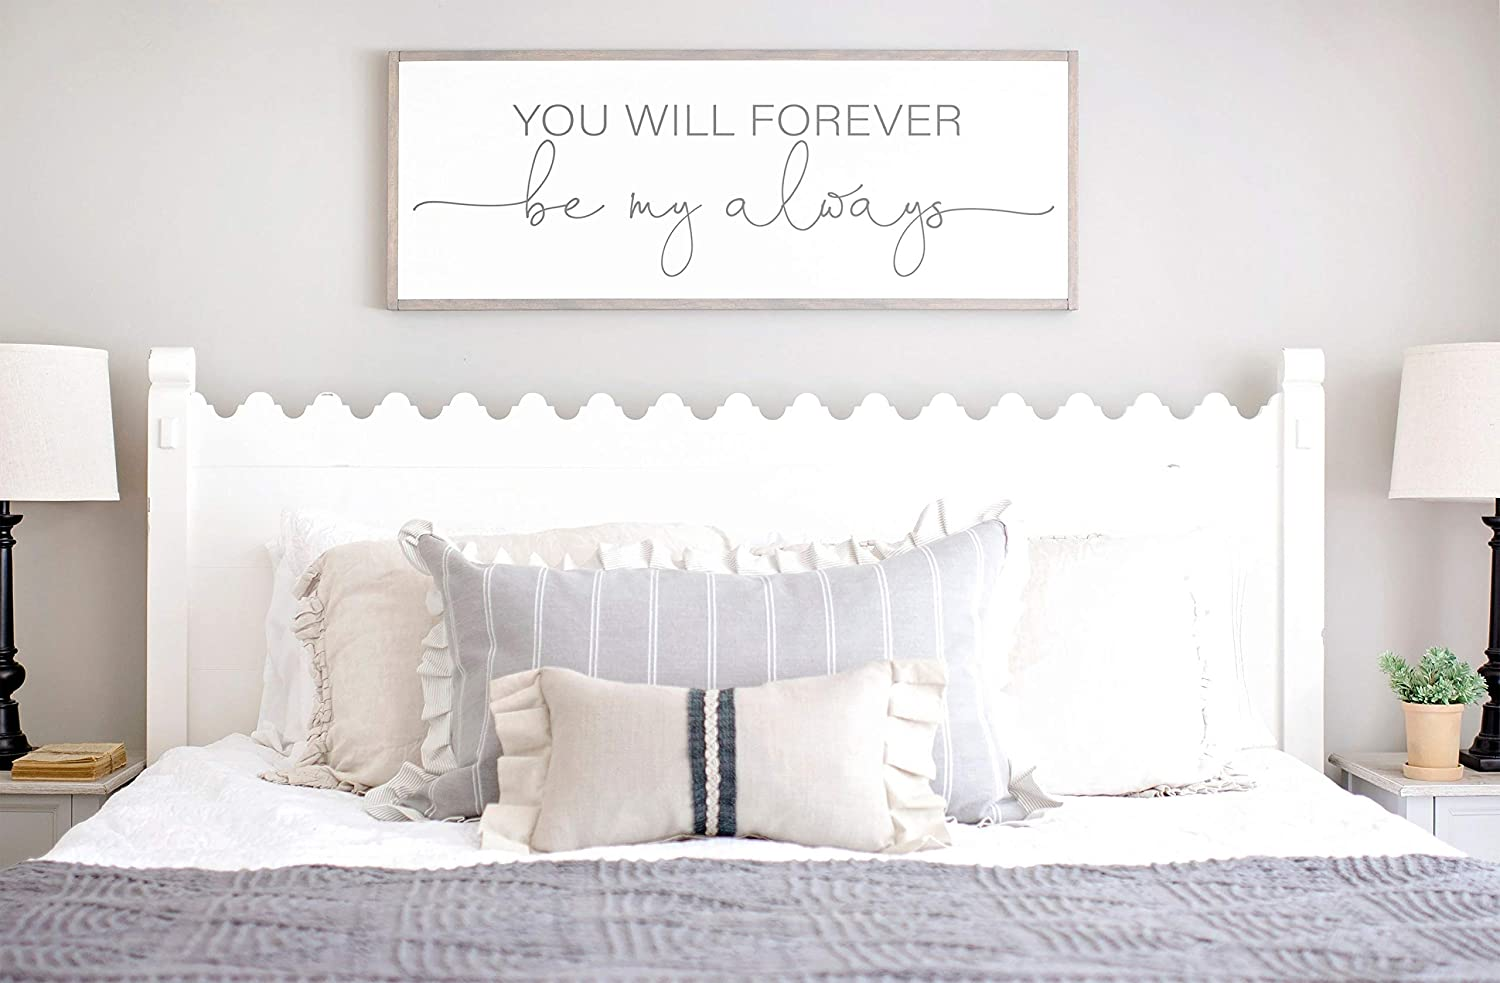 DASON Bedroom Wall Decor Sign for Above Bed You Will Forever be My Always Wood Sign Master Bedroom Wall Decor Above Bed Signs